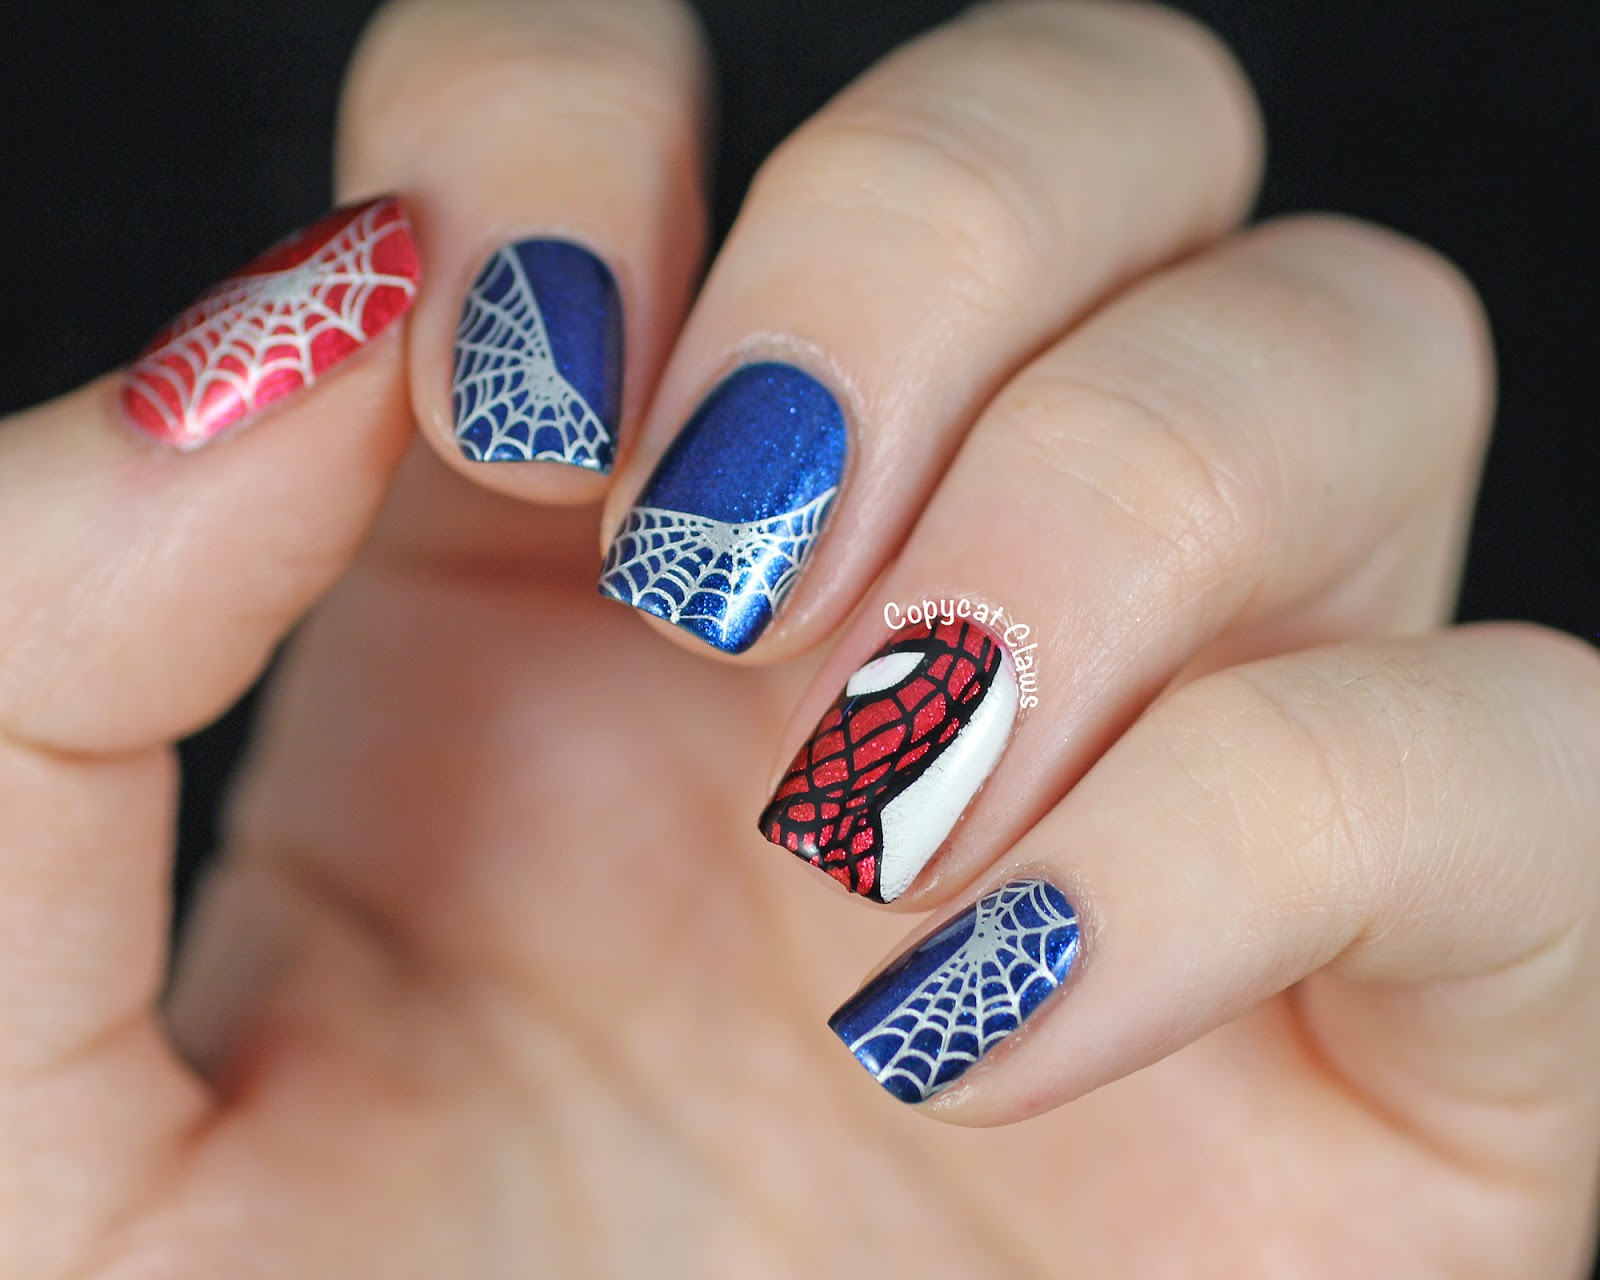 Copycat claws spider man nail stamping i love sparkly red polish so much that i couldnt go without painting a full nail with spidey sense so thats what i did on my thumb prinsesfo Choice Image